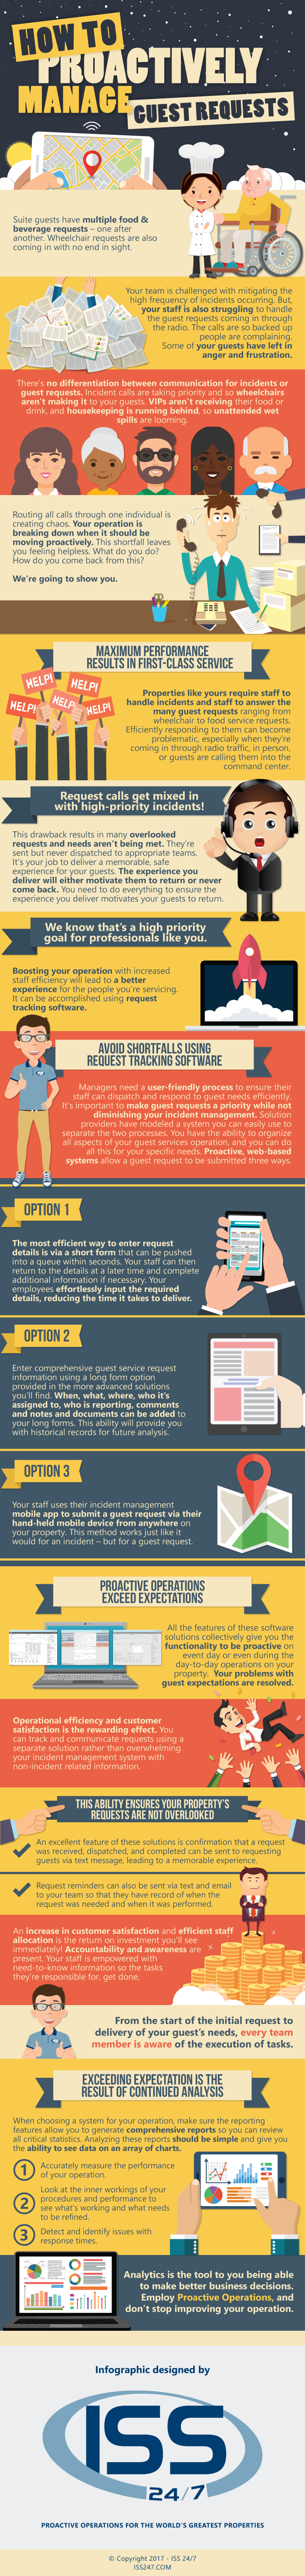 How to Proactively Manage Guest Requests